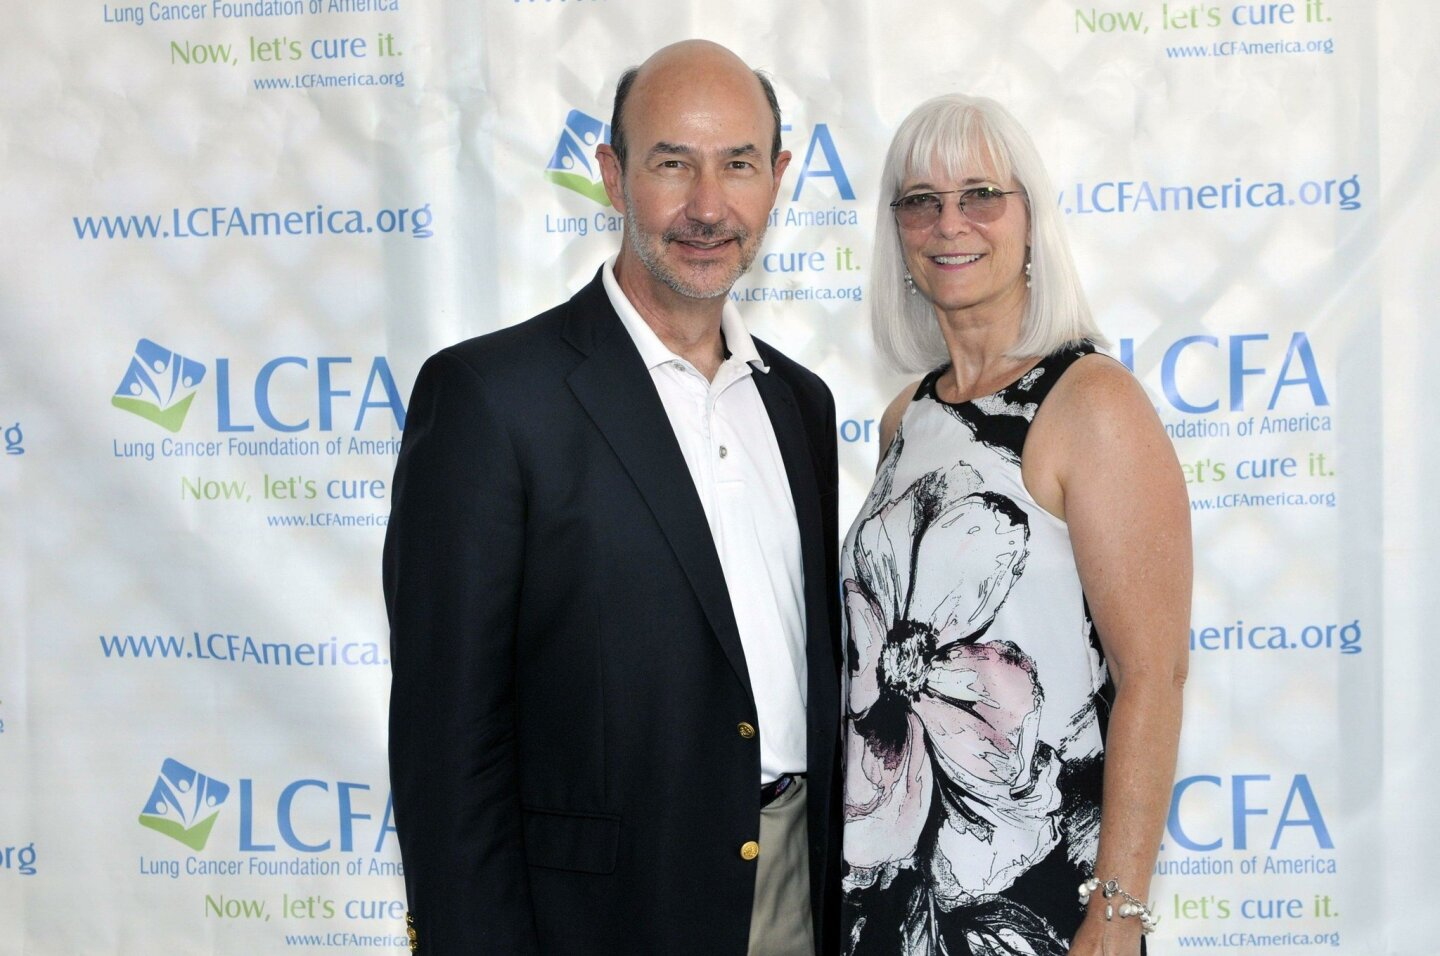 'Day at the Races' event benefits Lung Cancer Foundation of America